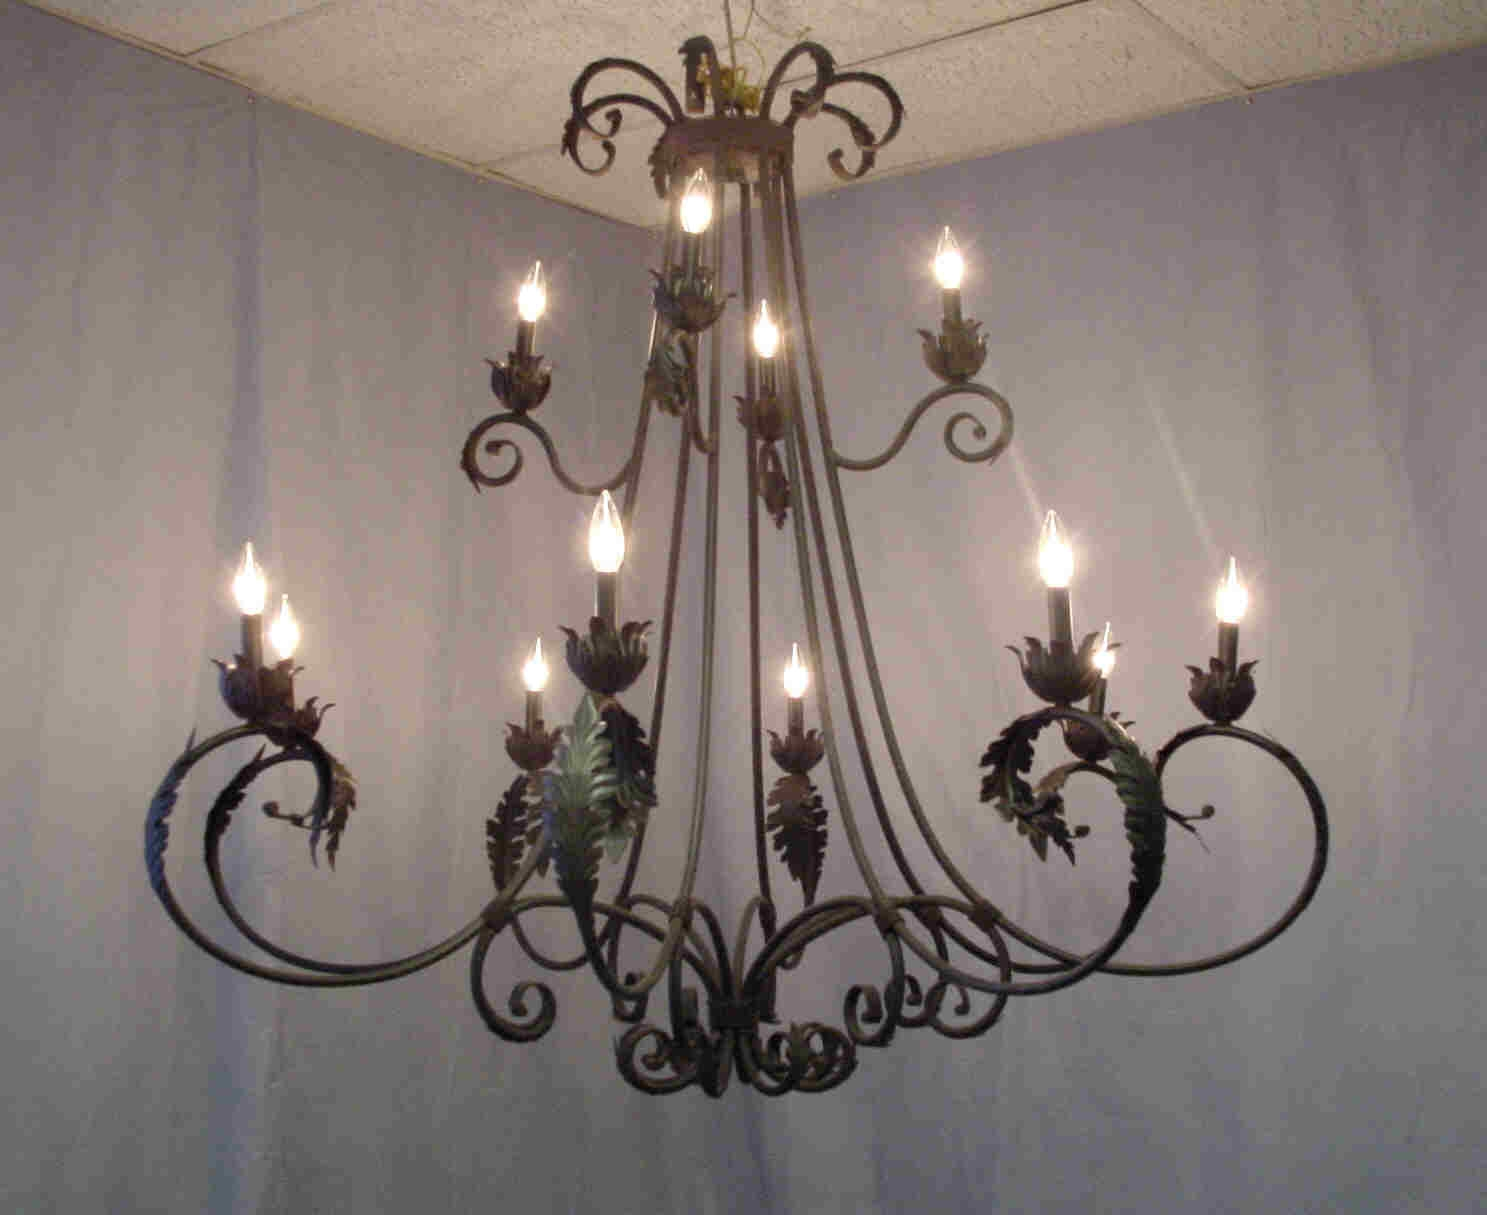 Stunning Iron Chandelier With Crystals Large French Wrought Iron Pertaining To Large Iron Chandeliers (#11 of 12)